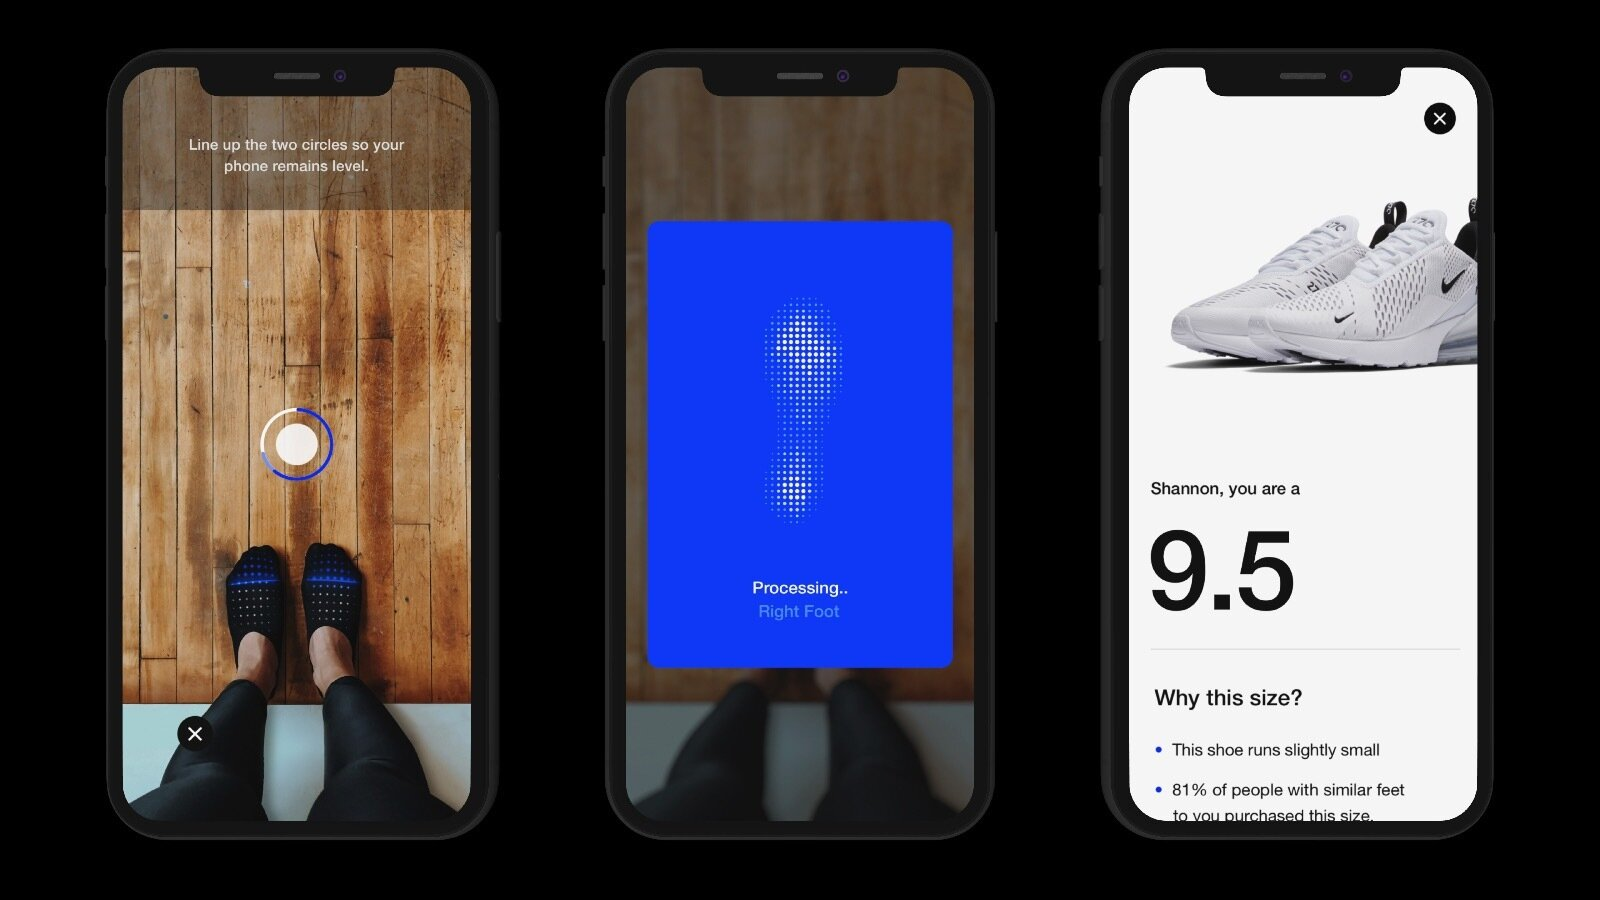 Nike's Augmented Reality Functionality in Its Mobile App